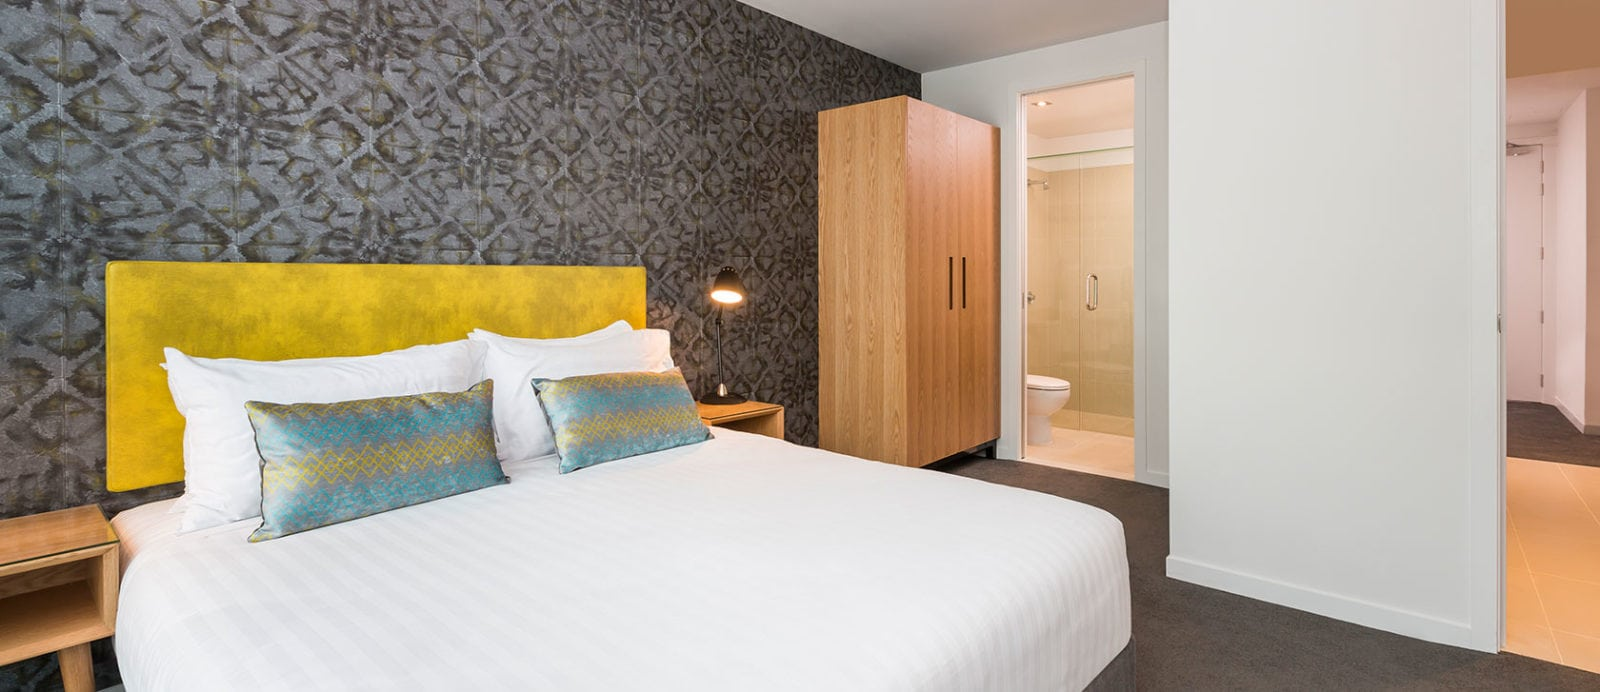 Adina apartment hotel auckland statement id for Bedroom furniture auckland